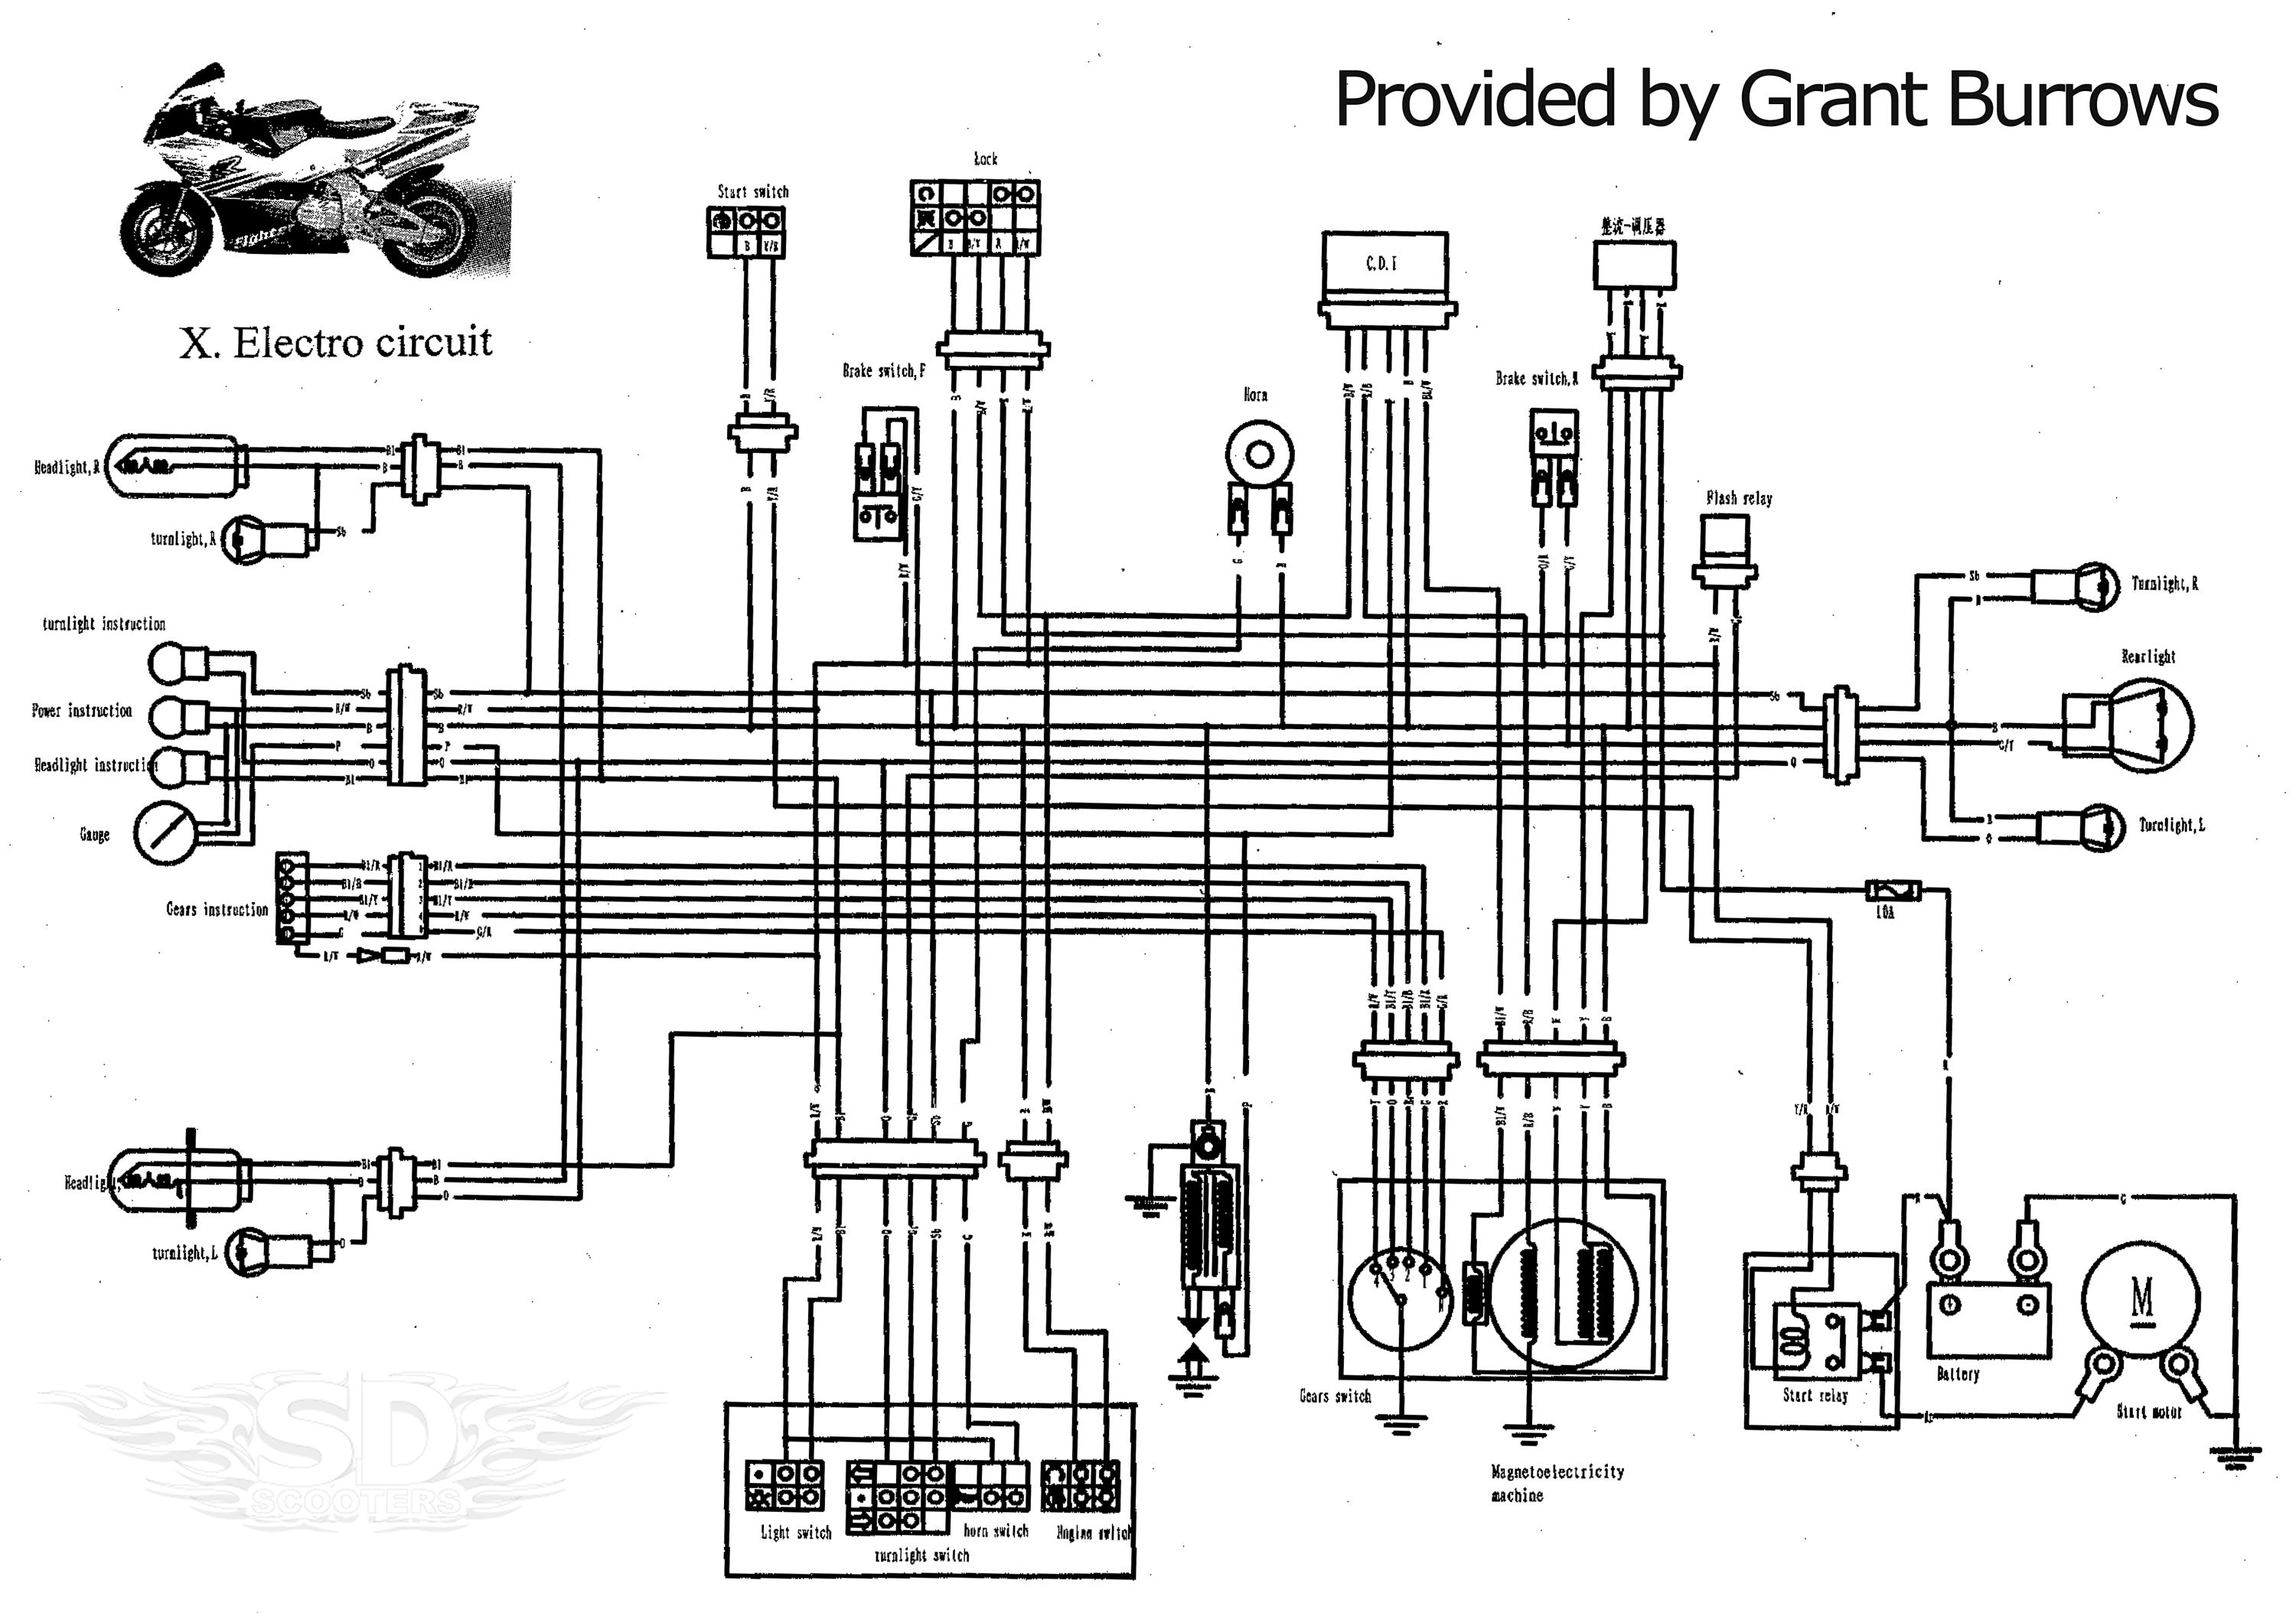 150cc quad bike wiring diagram 1978 evinrude 70 hp goped gas scooter cylinder head